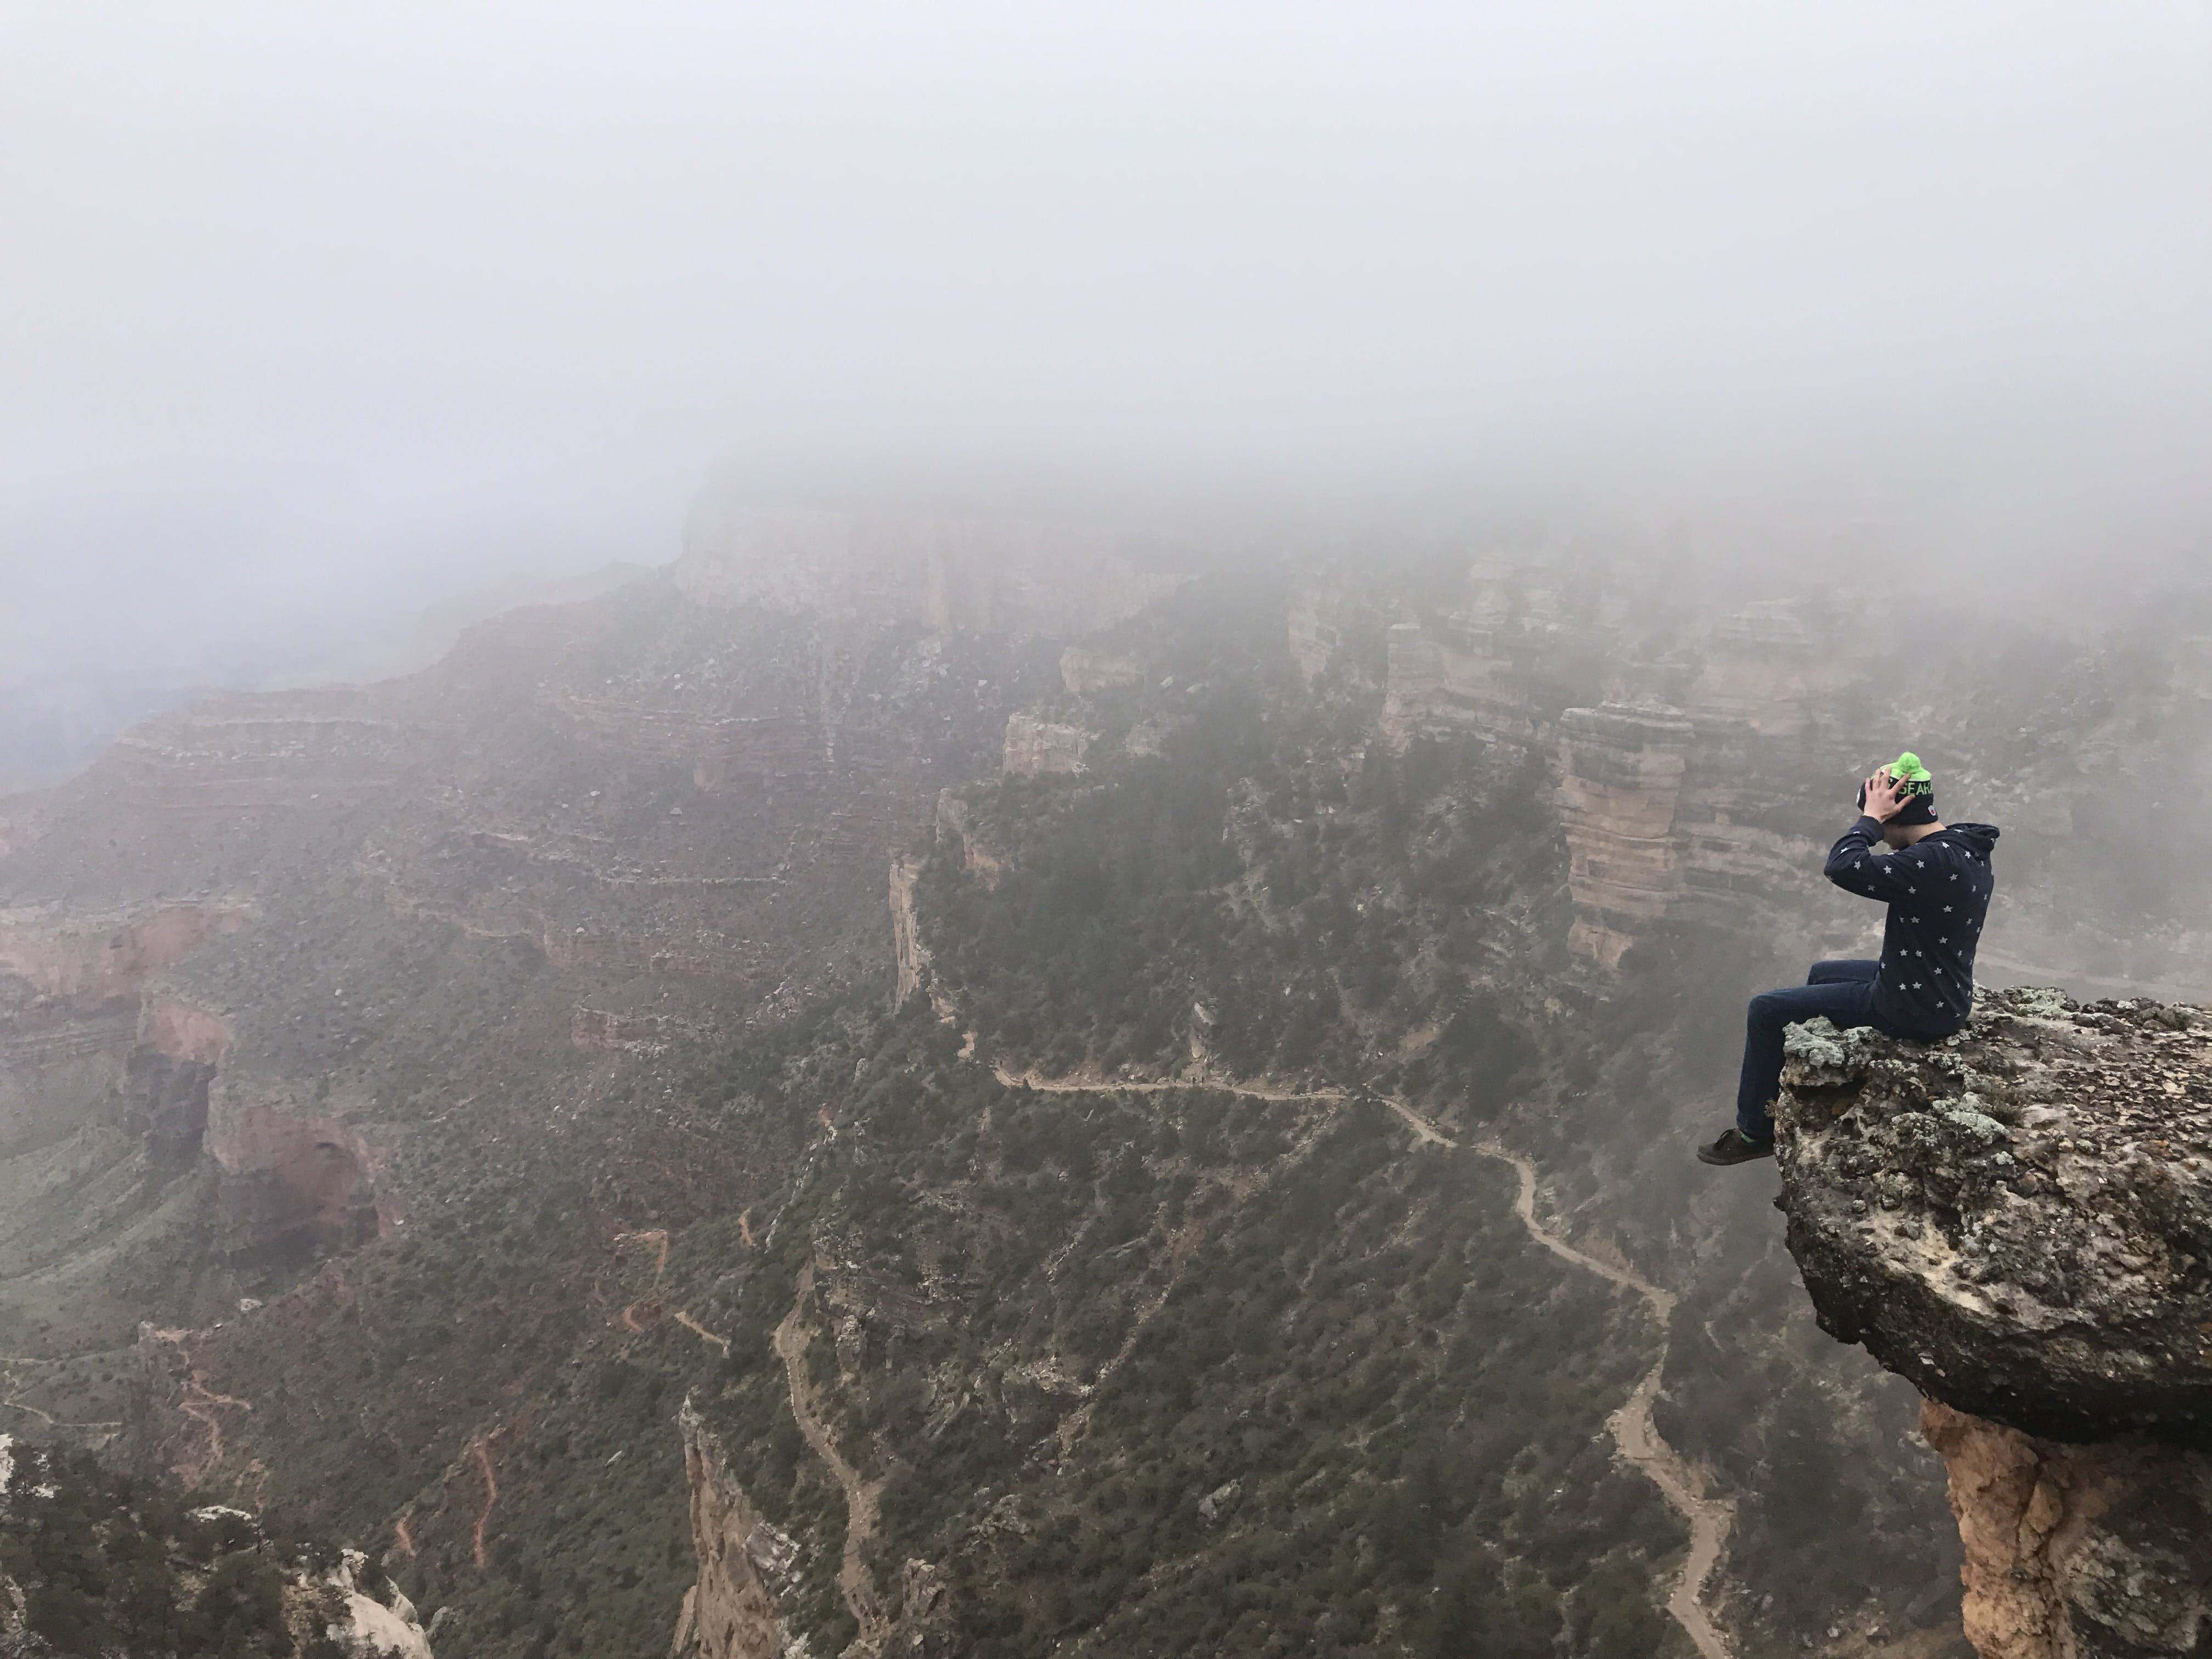 Man Sitting on Top of Cliff on Foggy Mountain